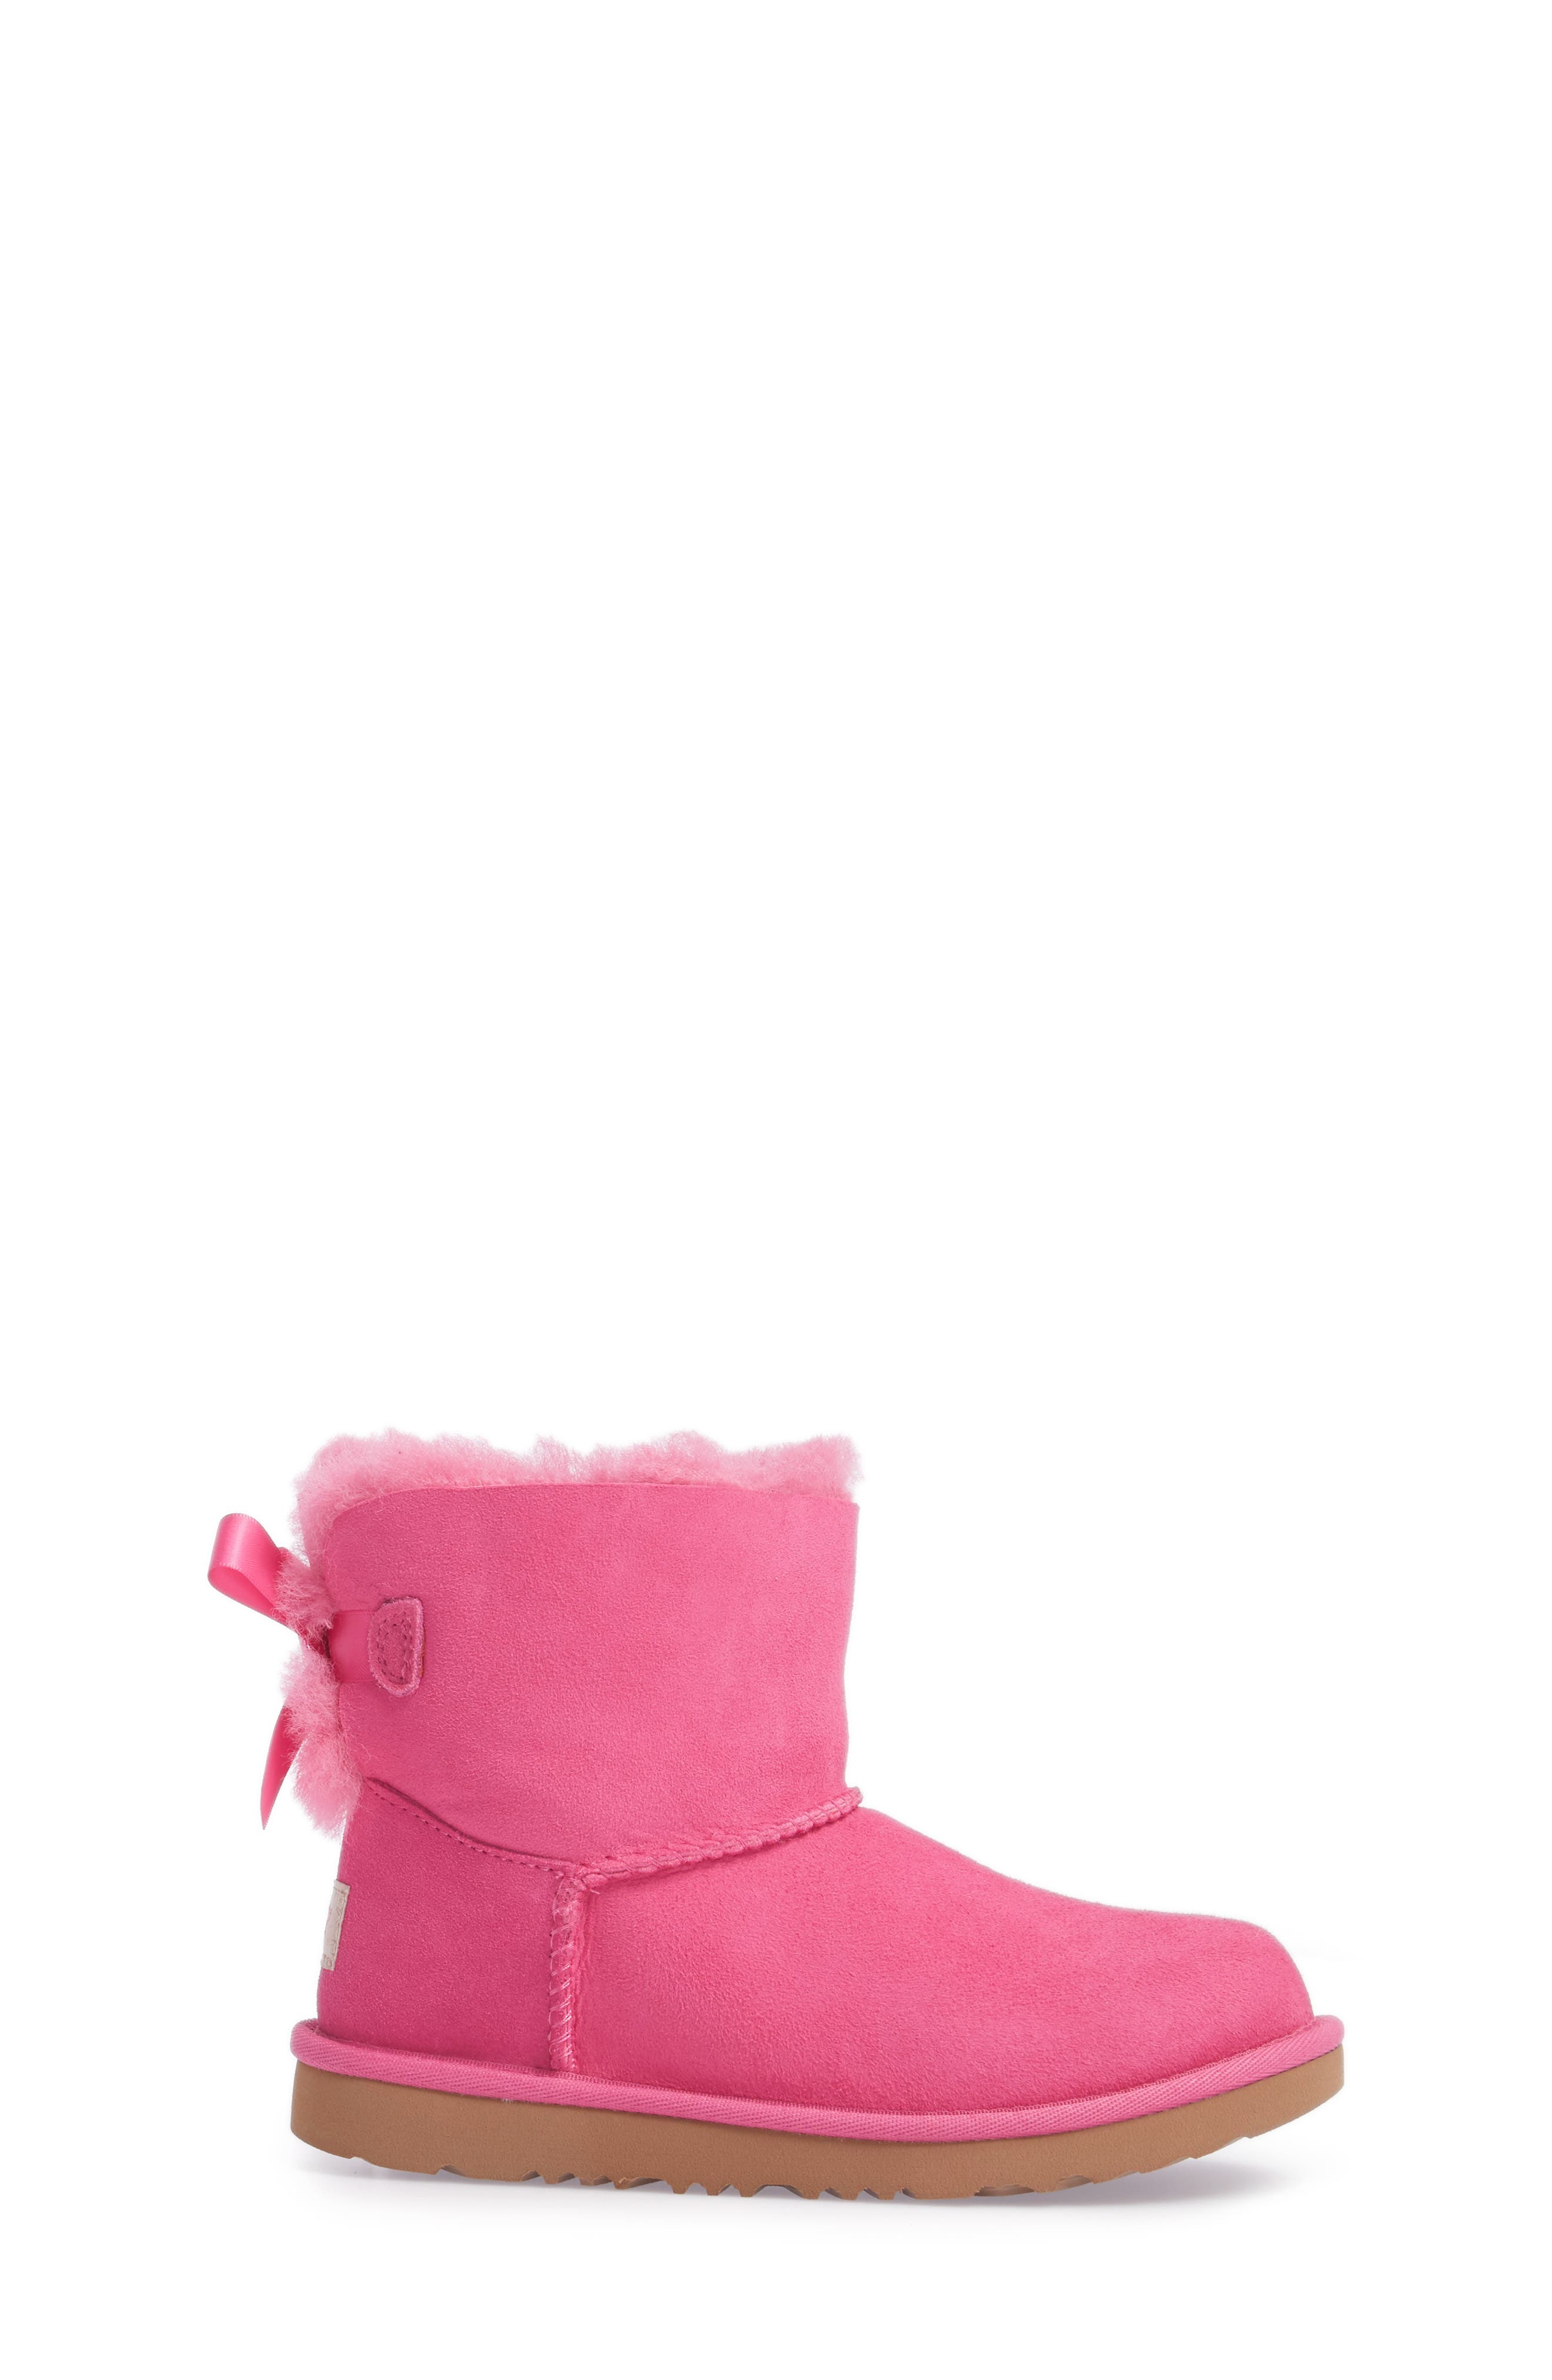 UGG<SUP>®</SUP>, Mini Bailey Bow II Water Resistant Boot, Alternate thumbnail 3, color, PINK AZALEA